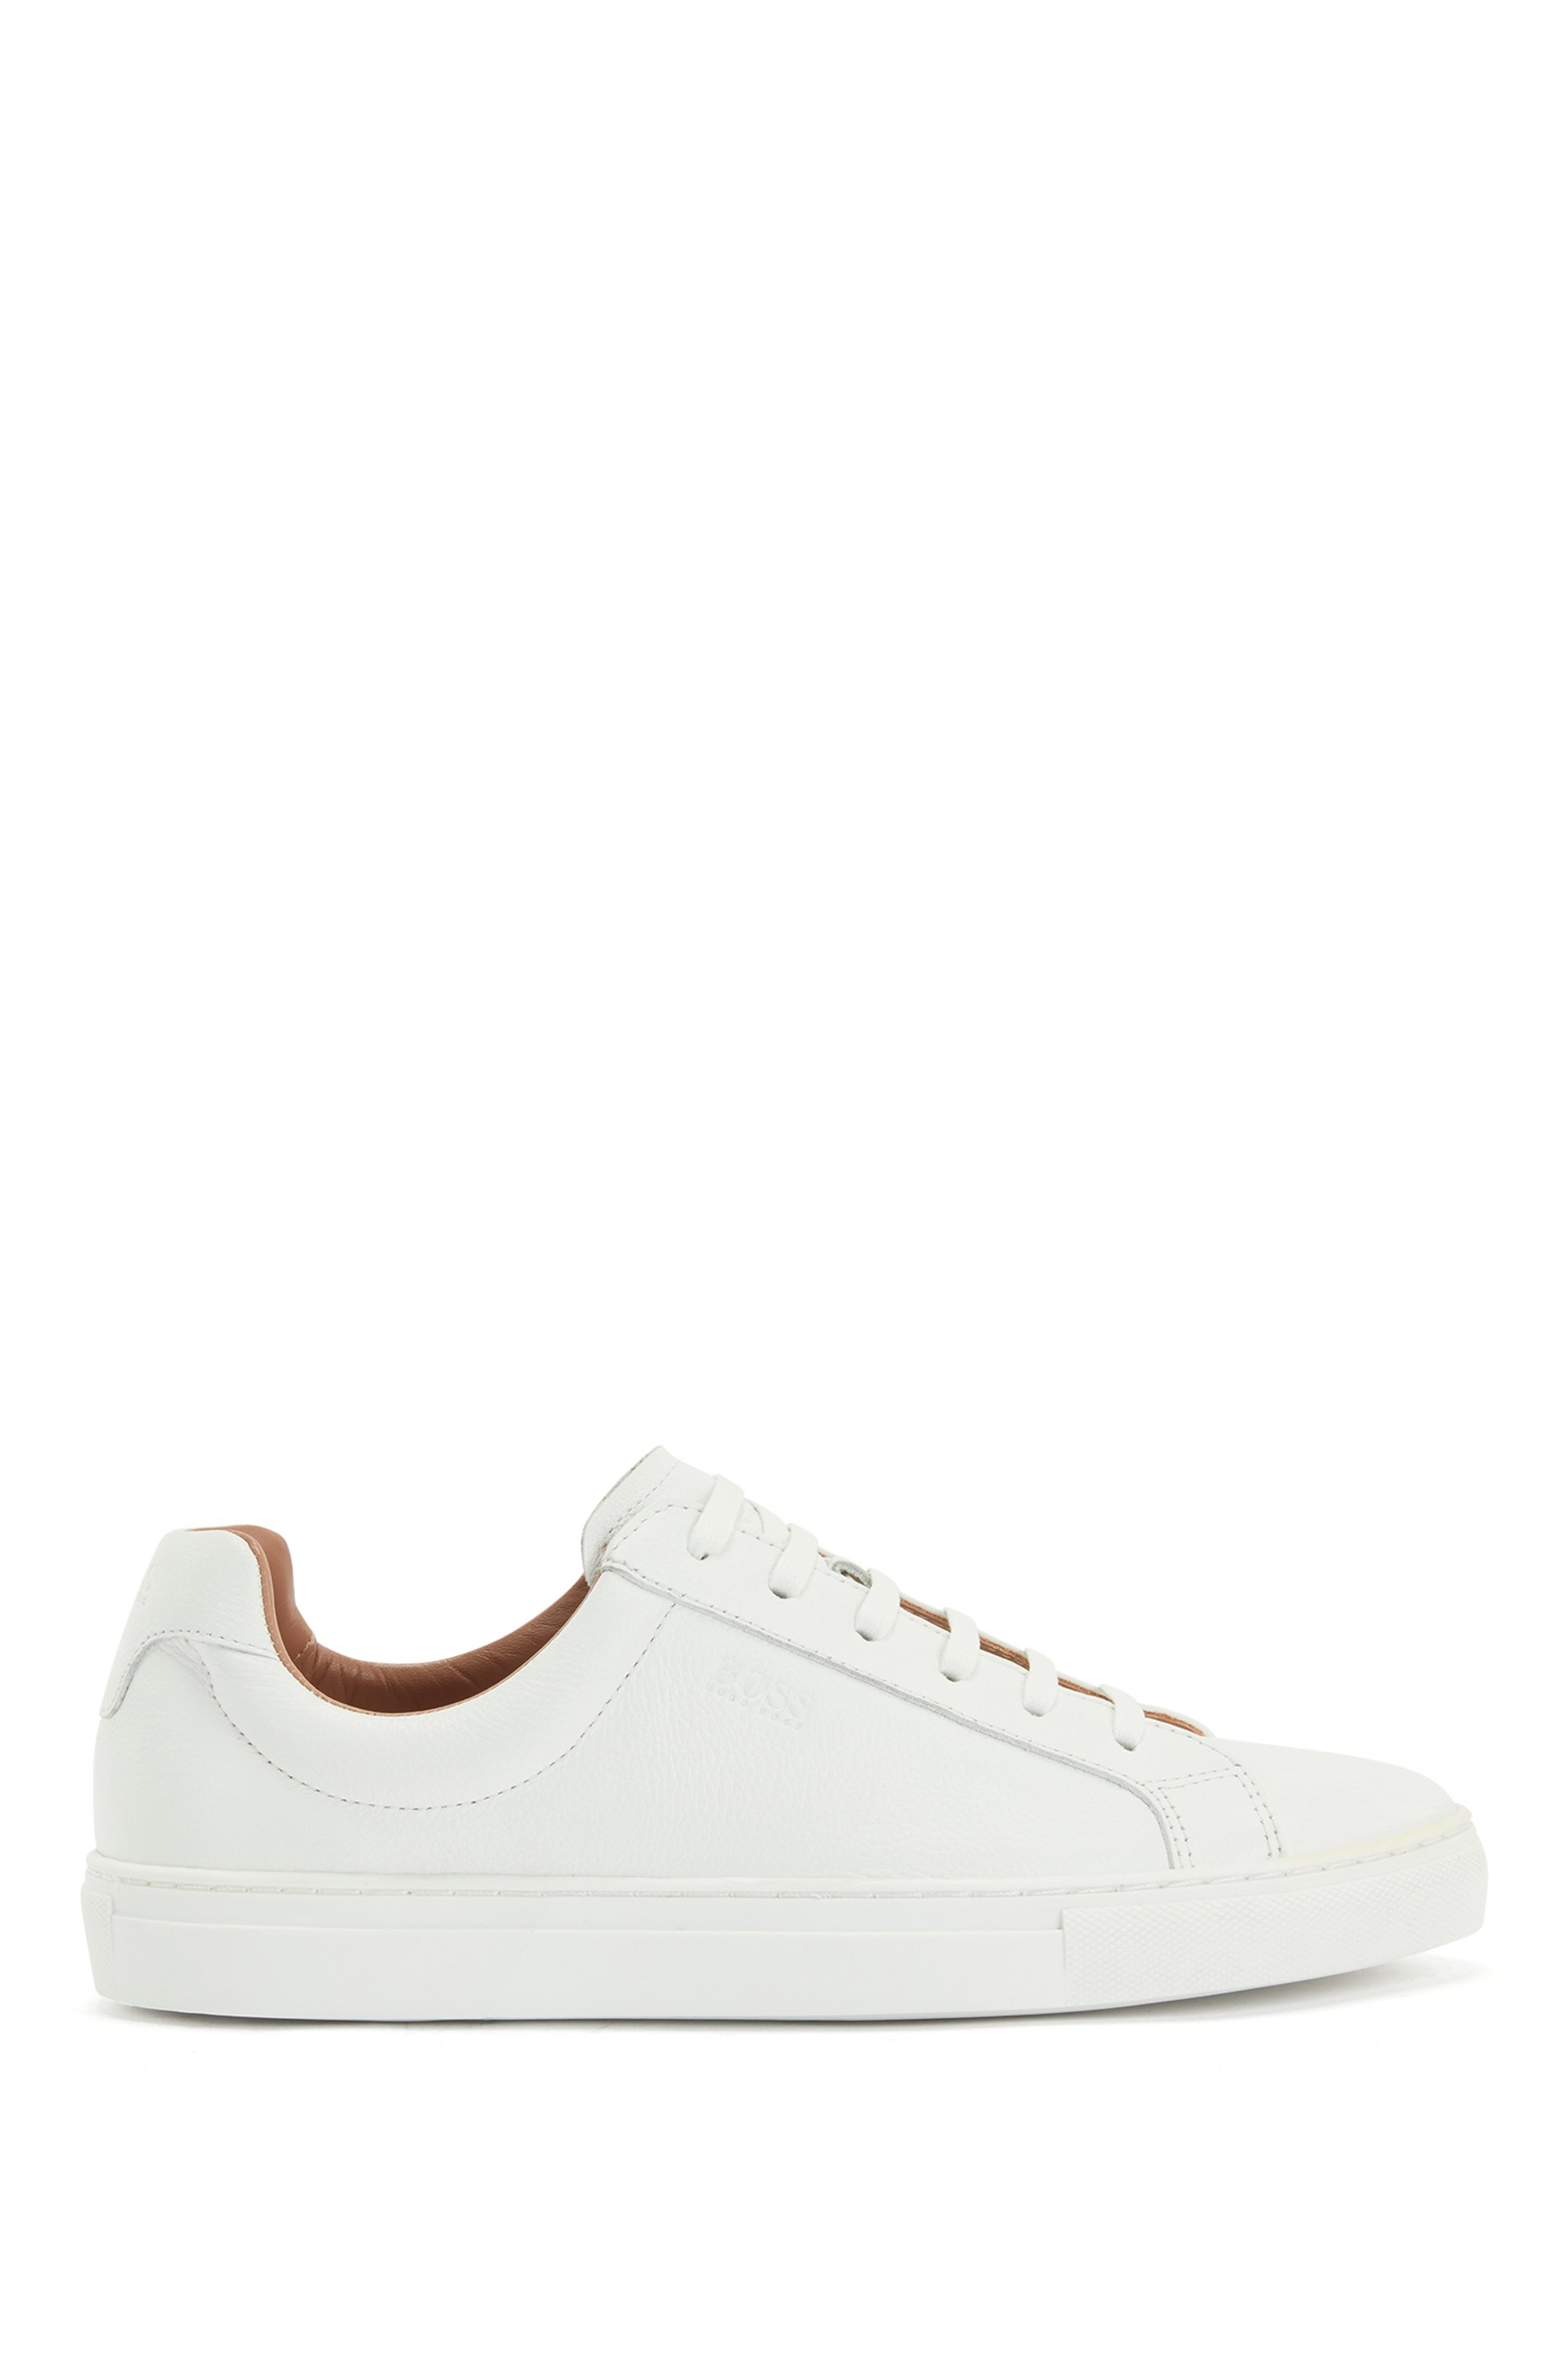 Low-top trainers in tumbled leather with embossed logo, White